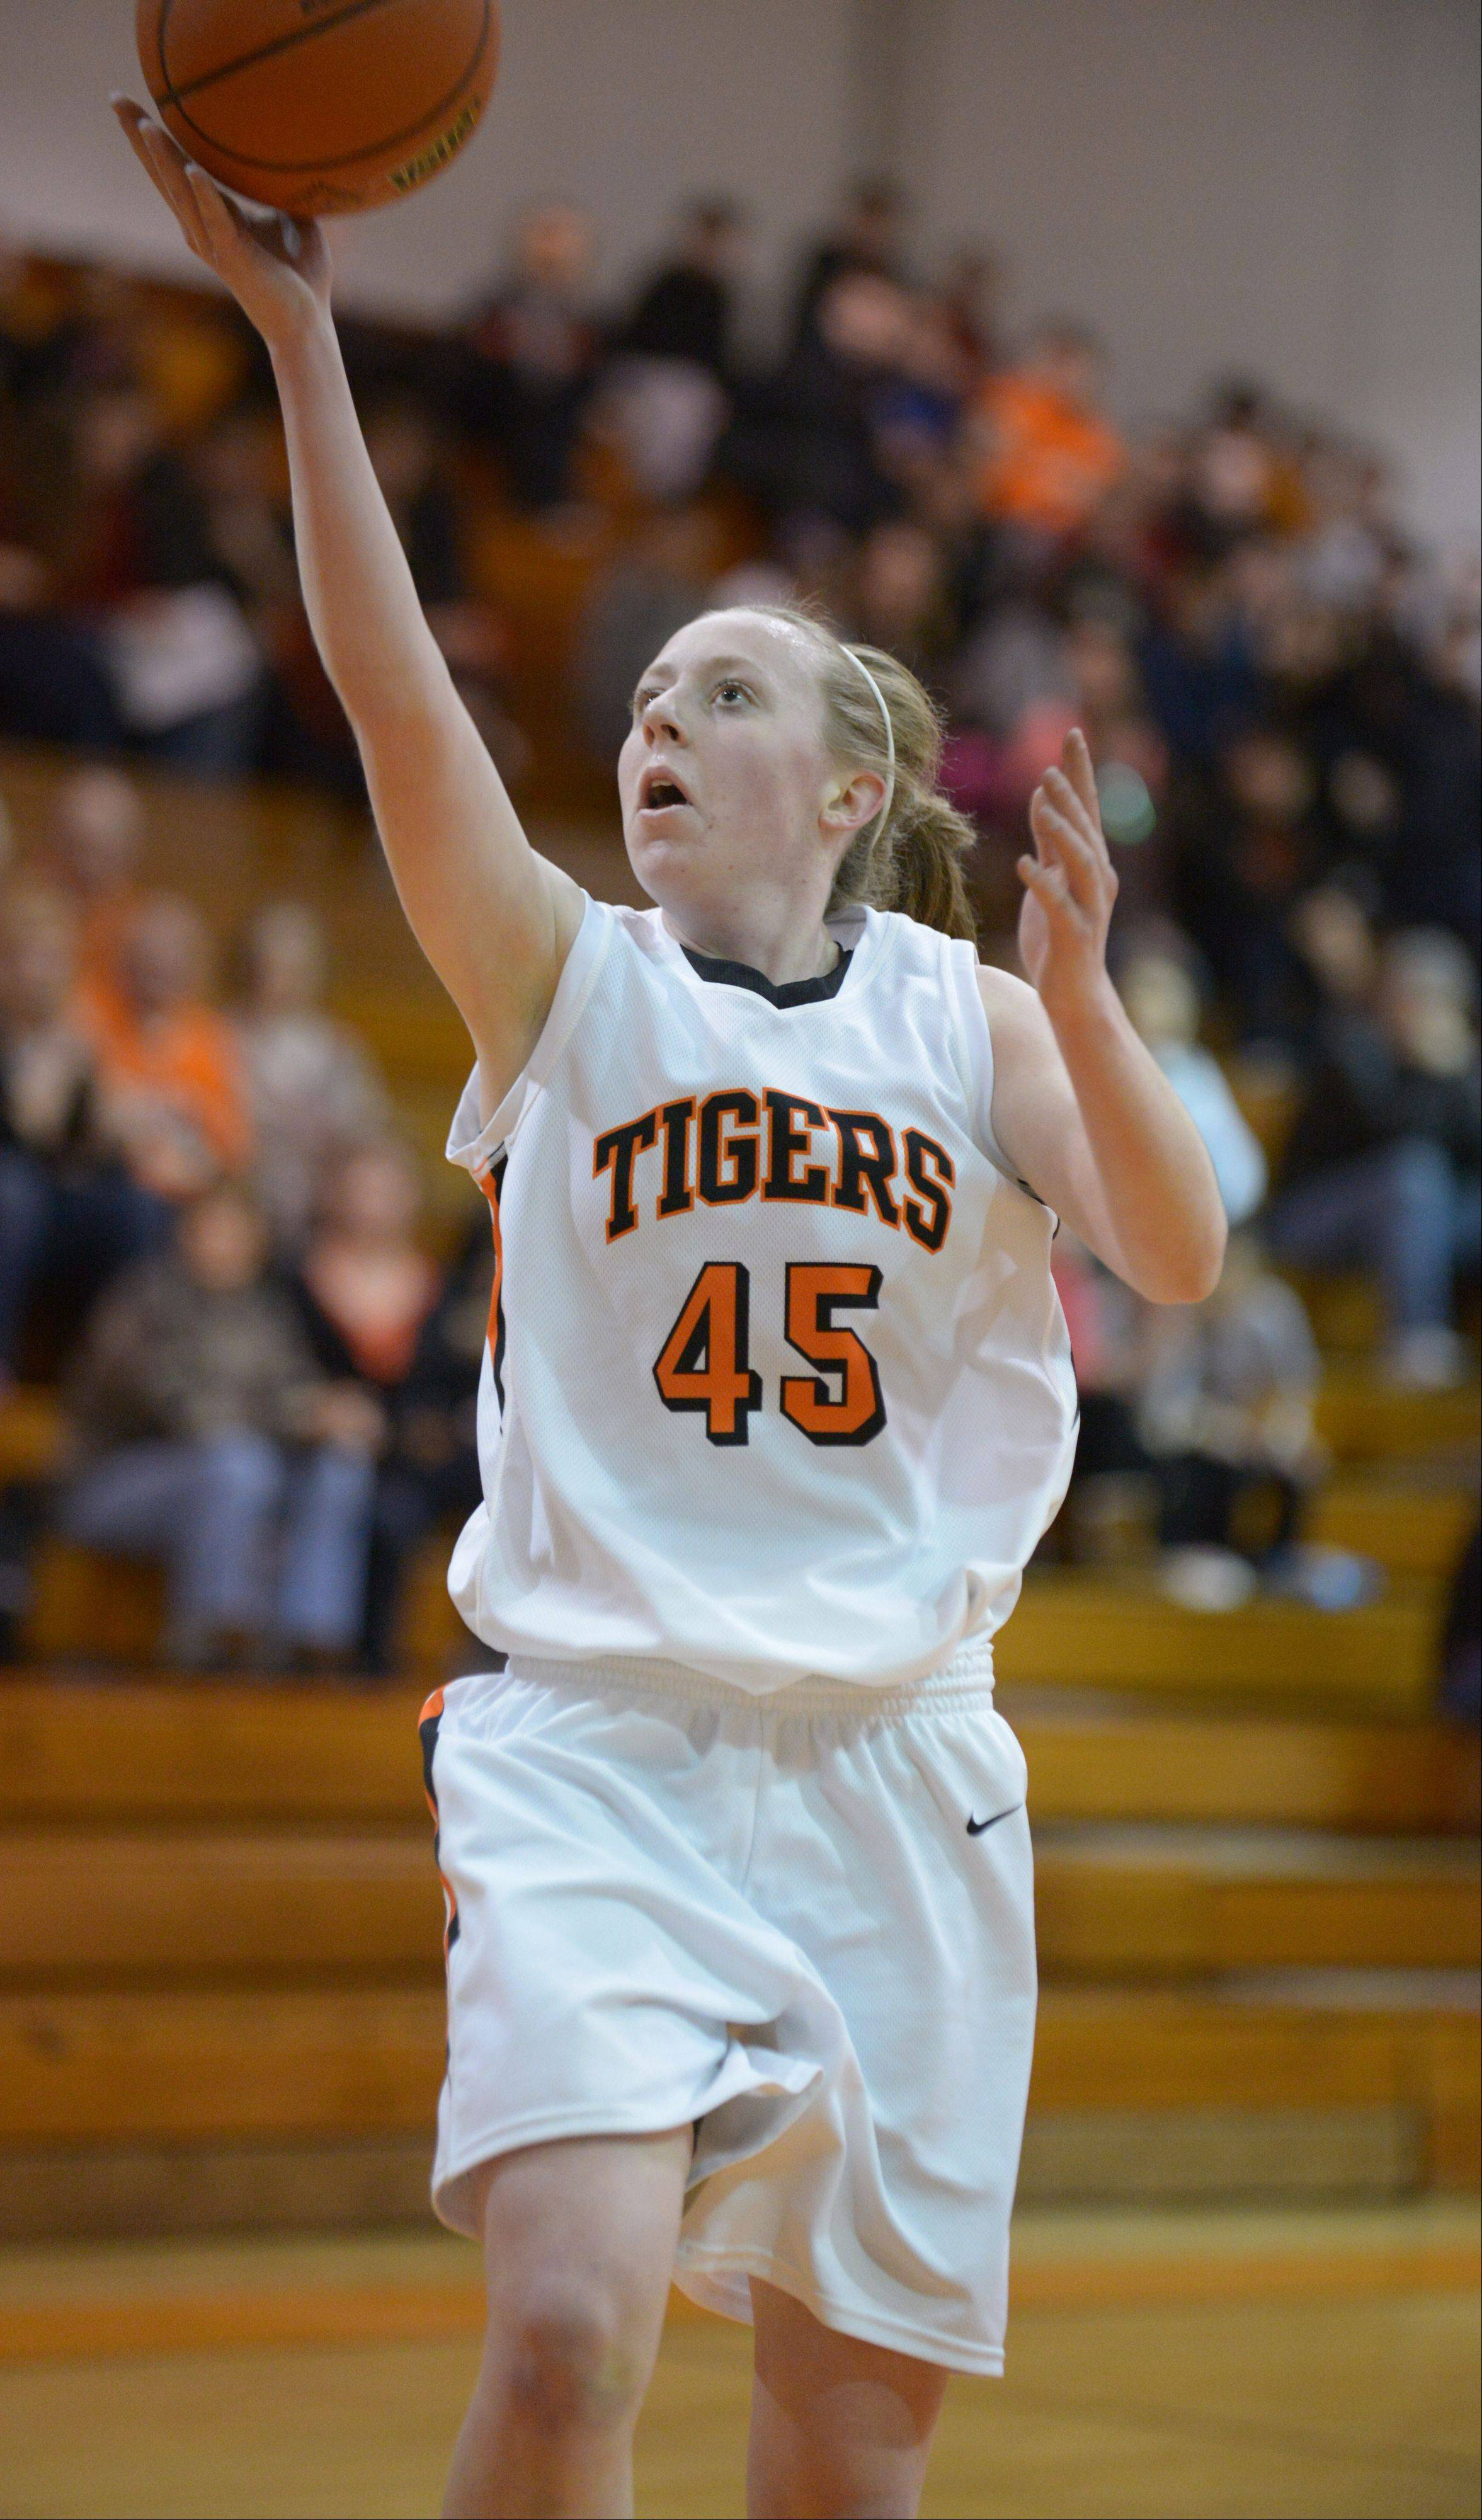 Junior Meghan Waldron of Wheaton Warrenville South will lead her teammates against Huntley Monday night in the Class 4A Dundee-Crown supersectional.